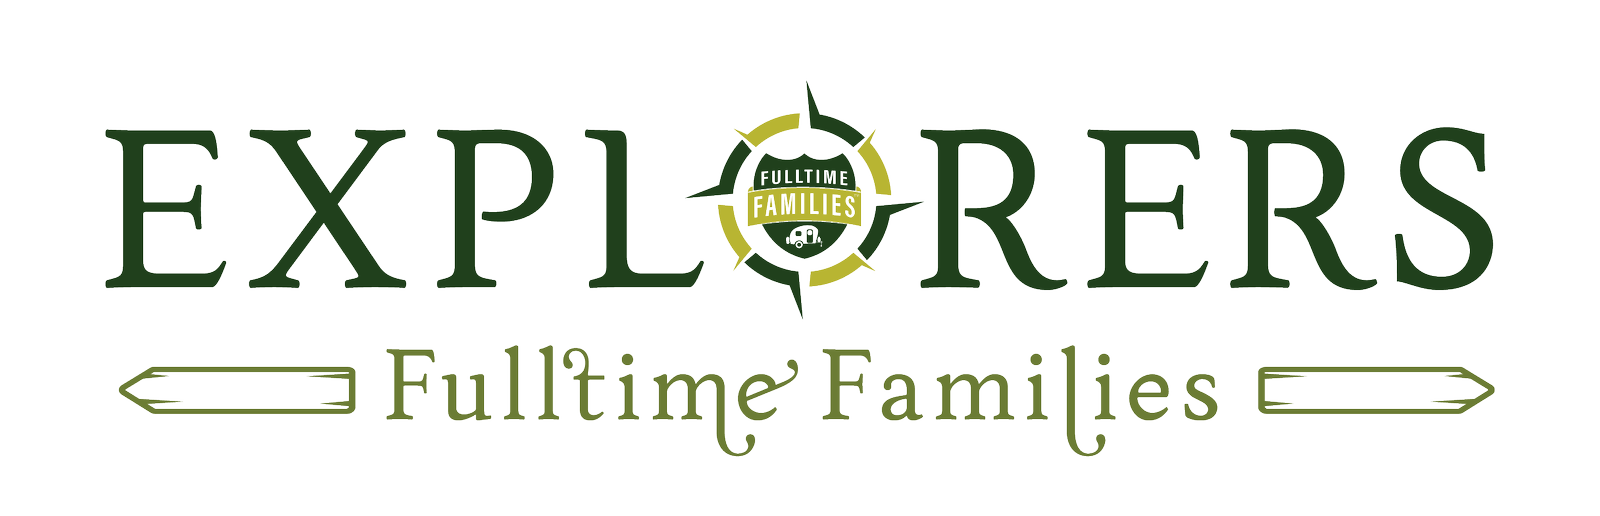 Fulltime Families Explorers Program